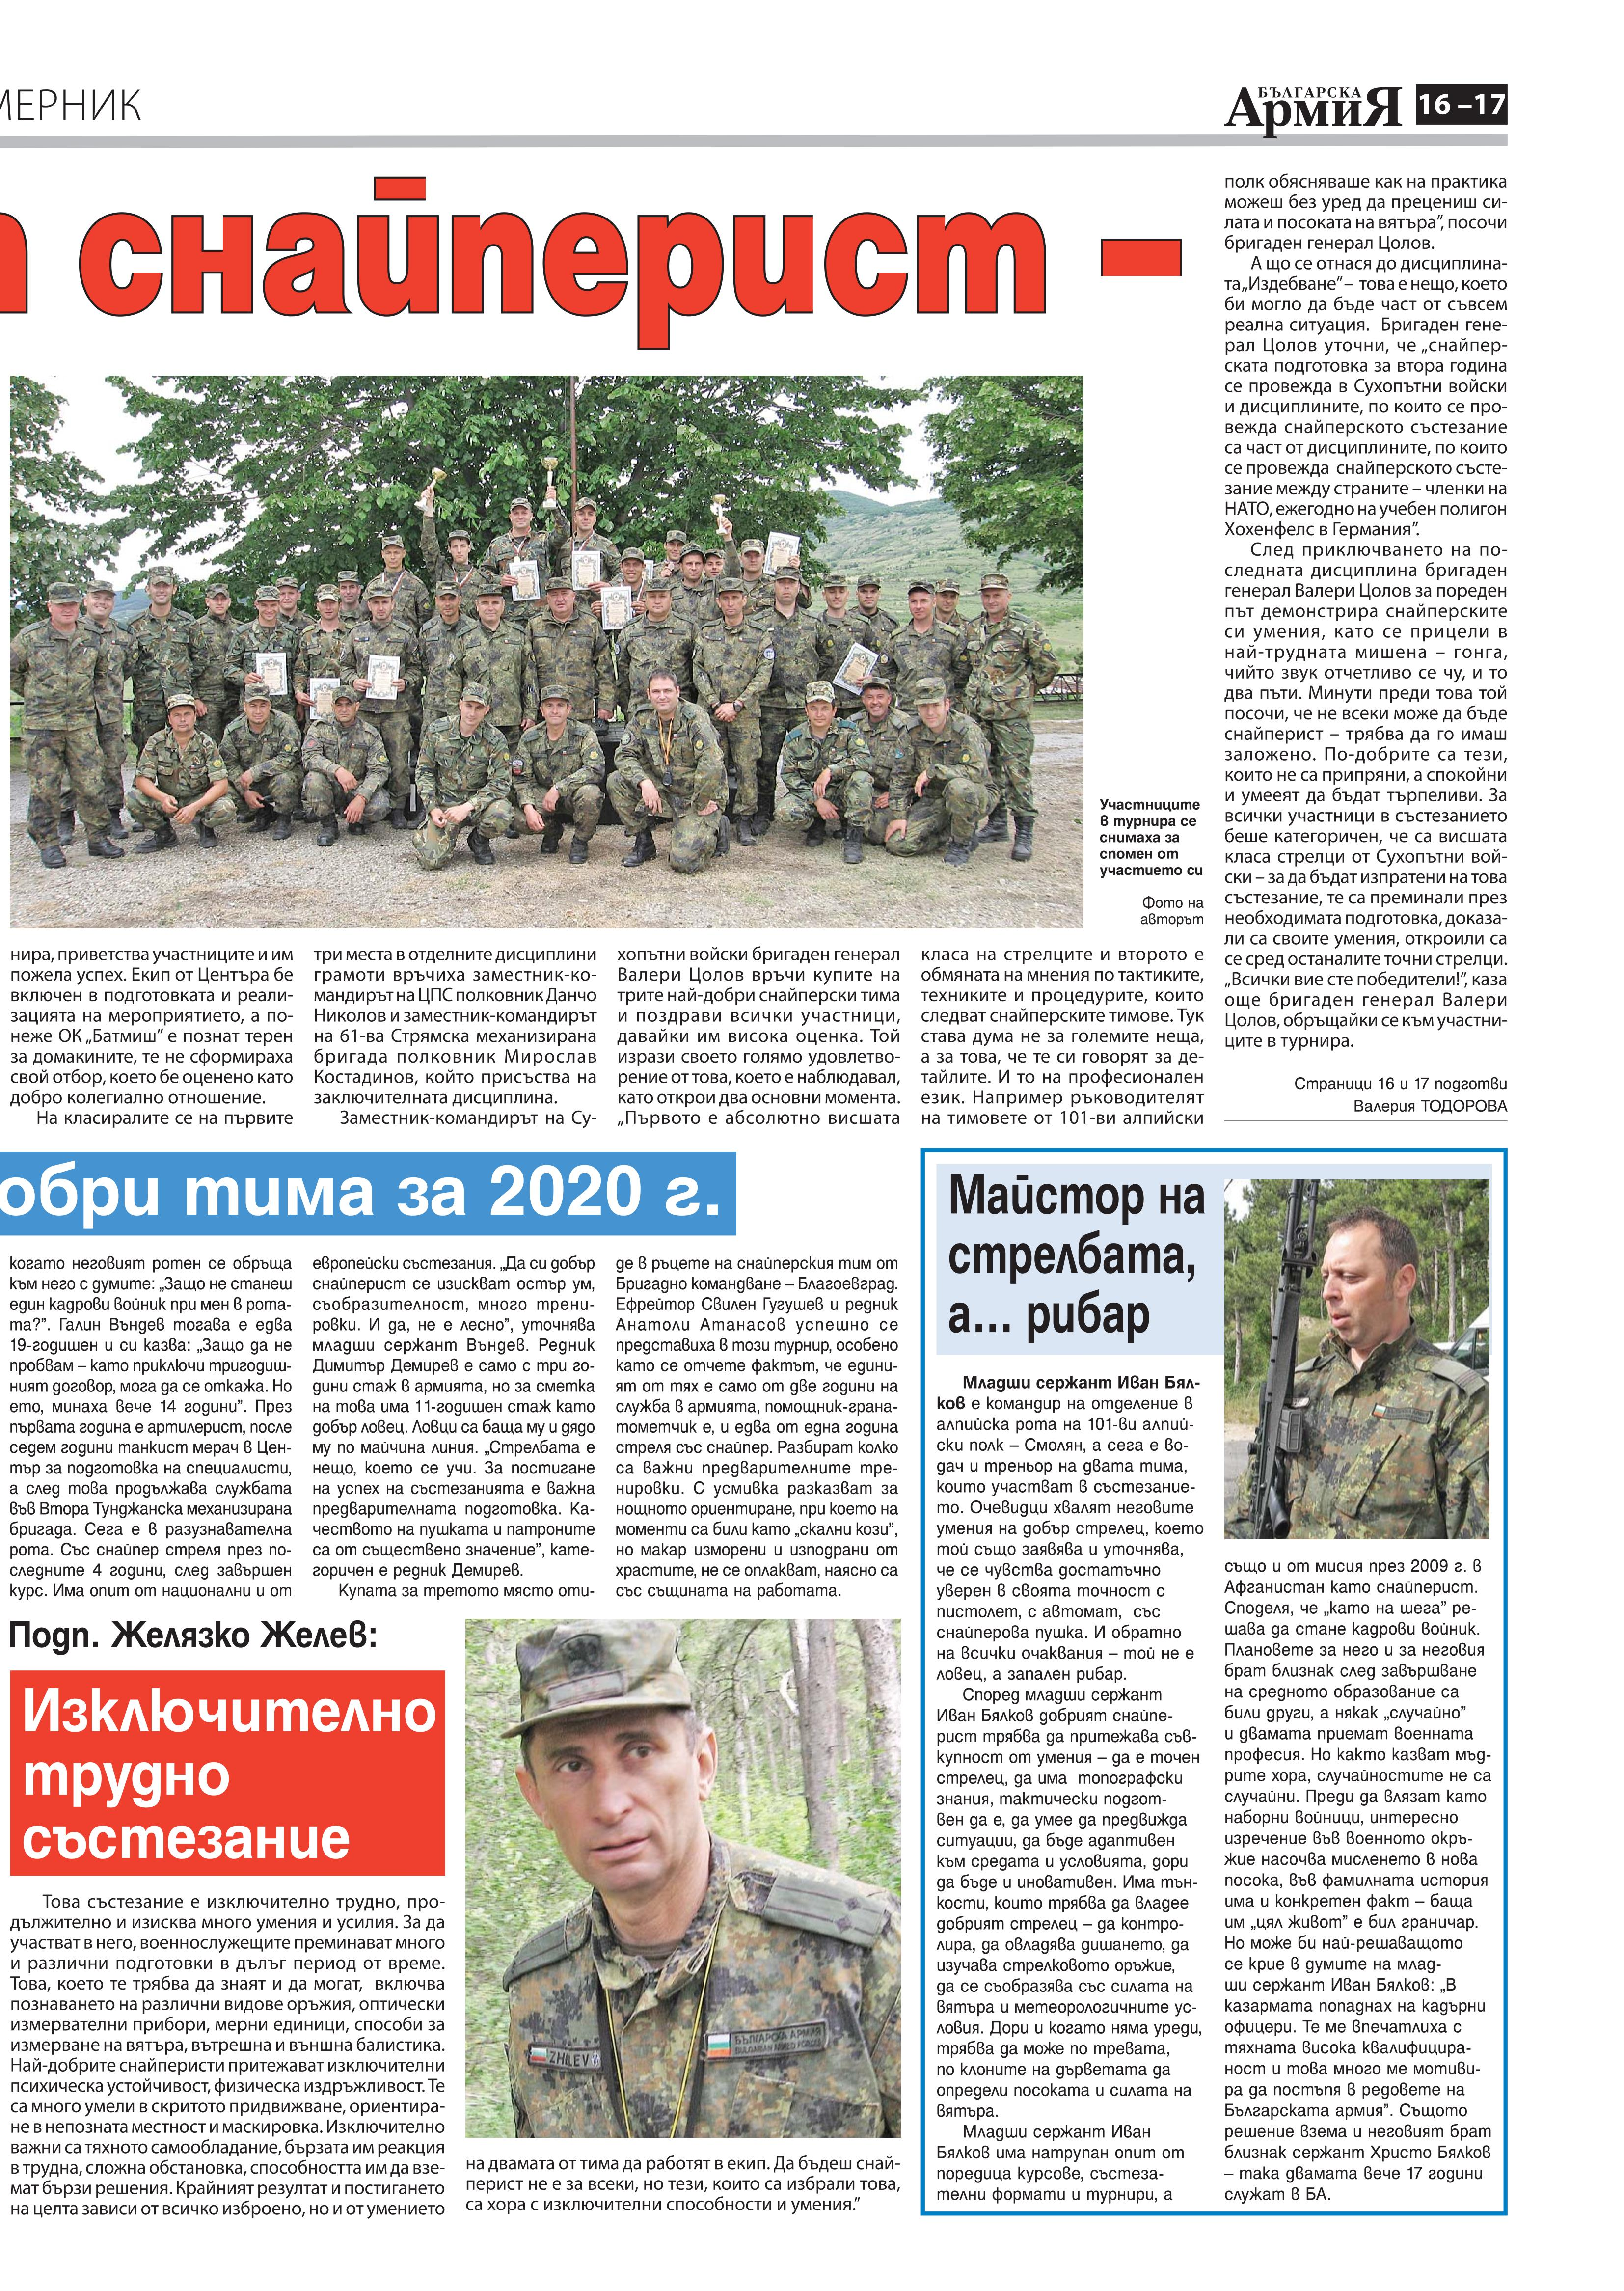 https://www.armymedia.bg/wp-content/uploads/2015/06/17.page1_-141.jpg